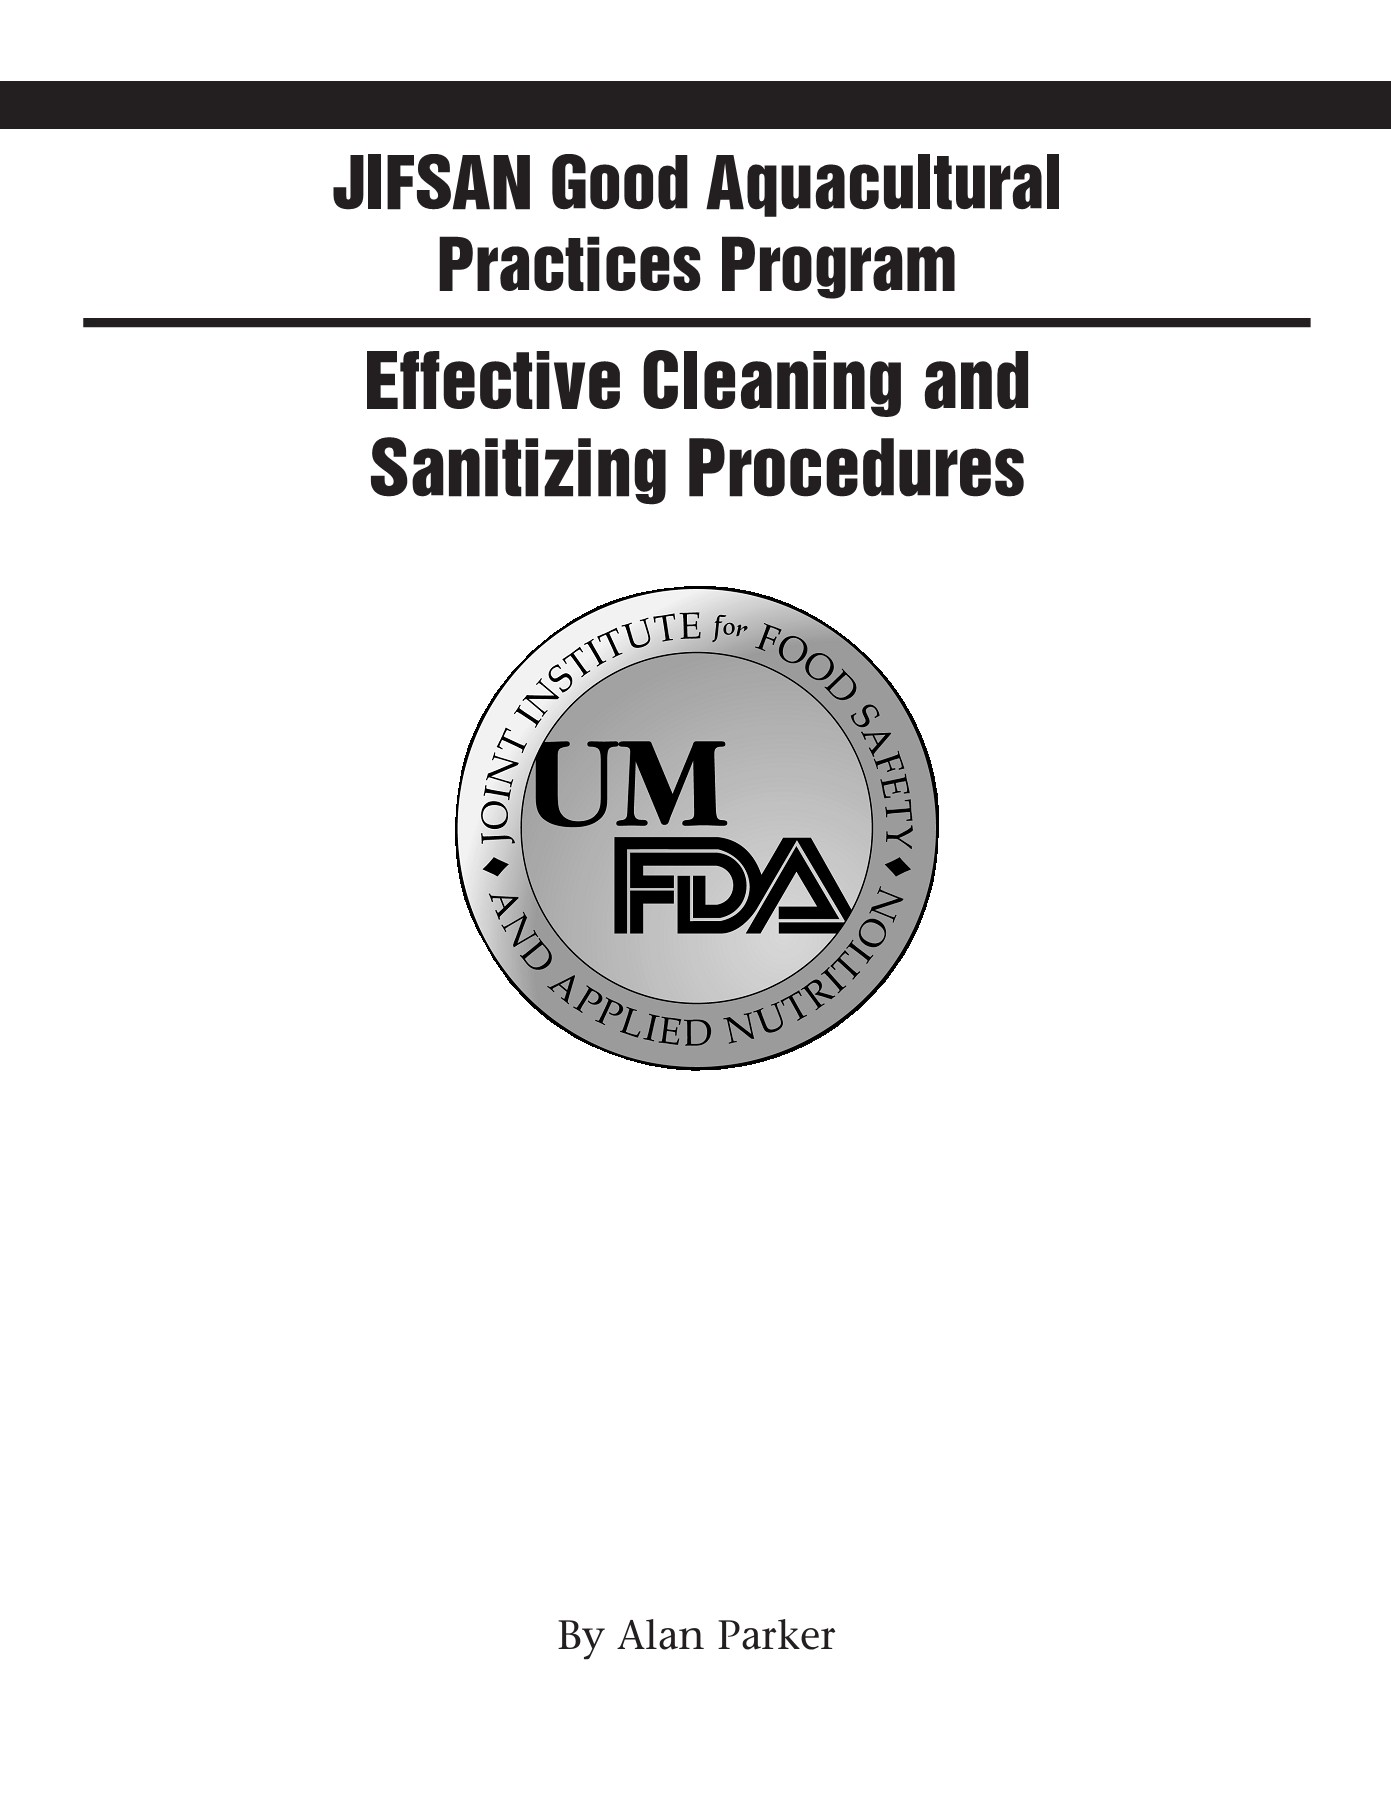 Effective Cleaning and Sanitizing Procedures - JIFSAN Pages